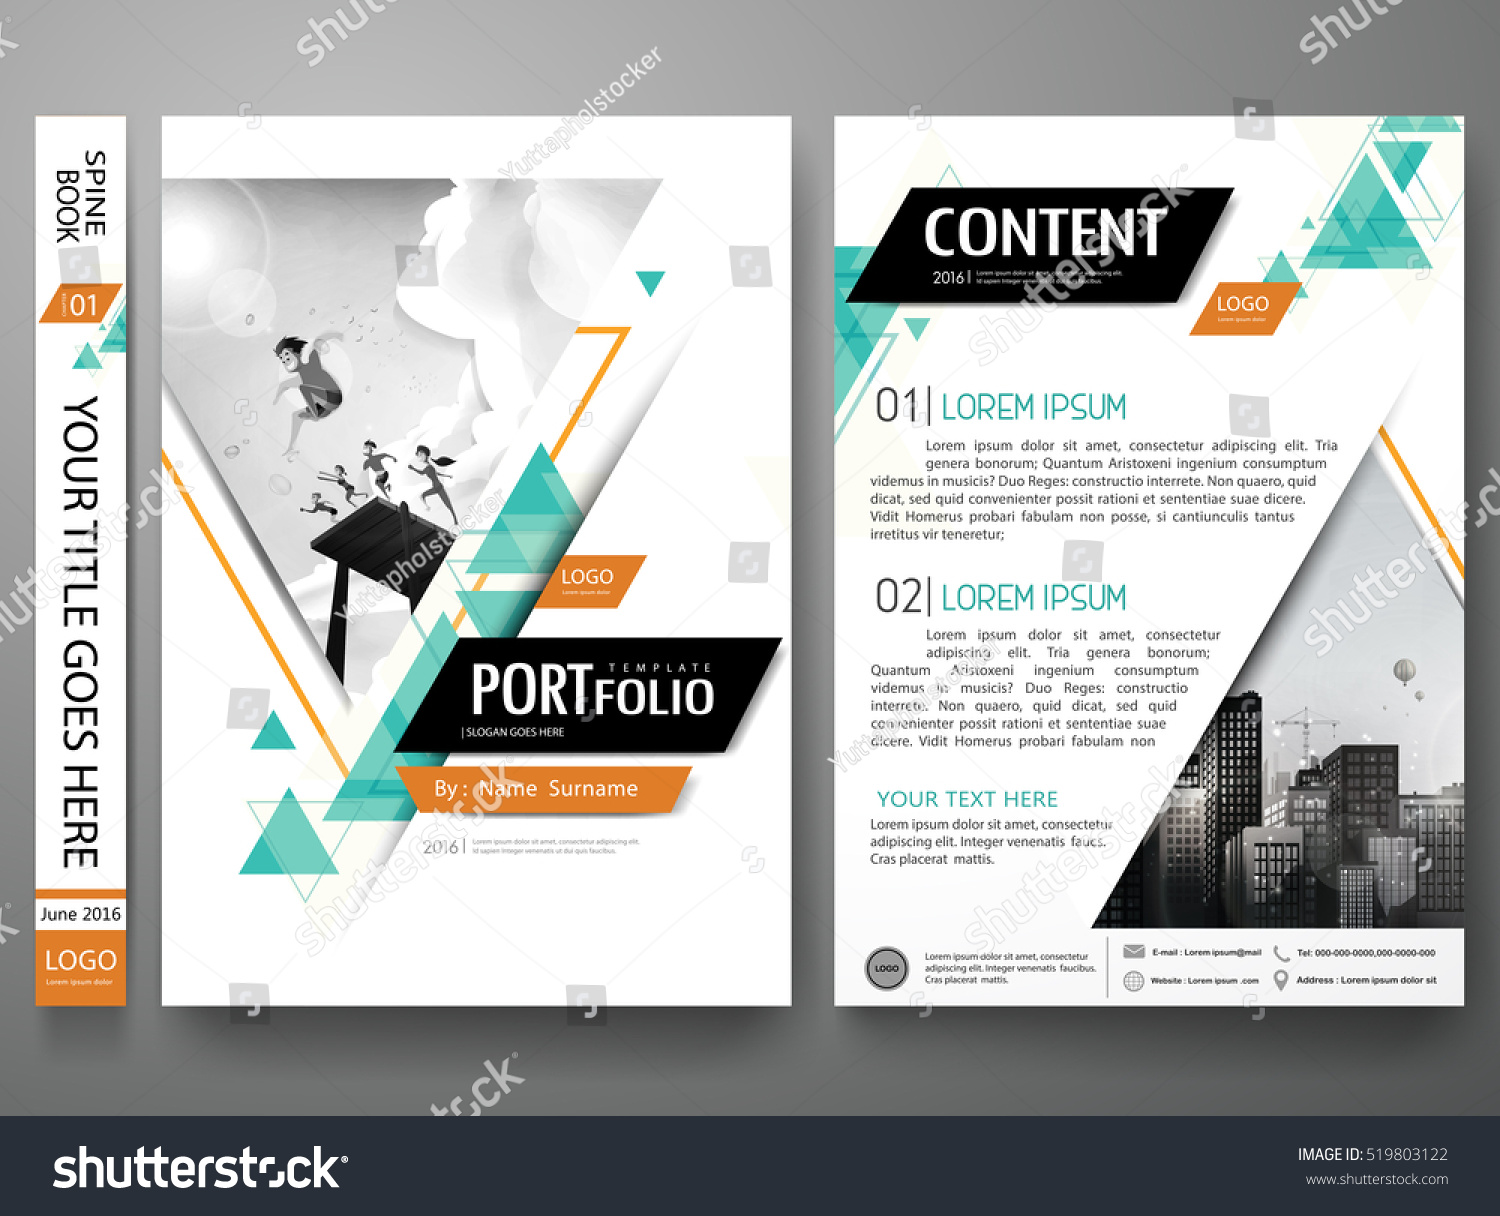 portfolio design template vector minimal brochure stock vector 519803122 shutterstock. Black Bedroom Furniture Sets. Home Design Ideas